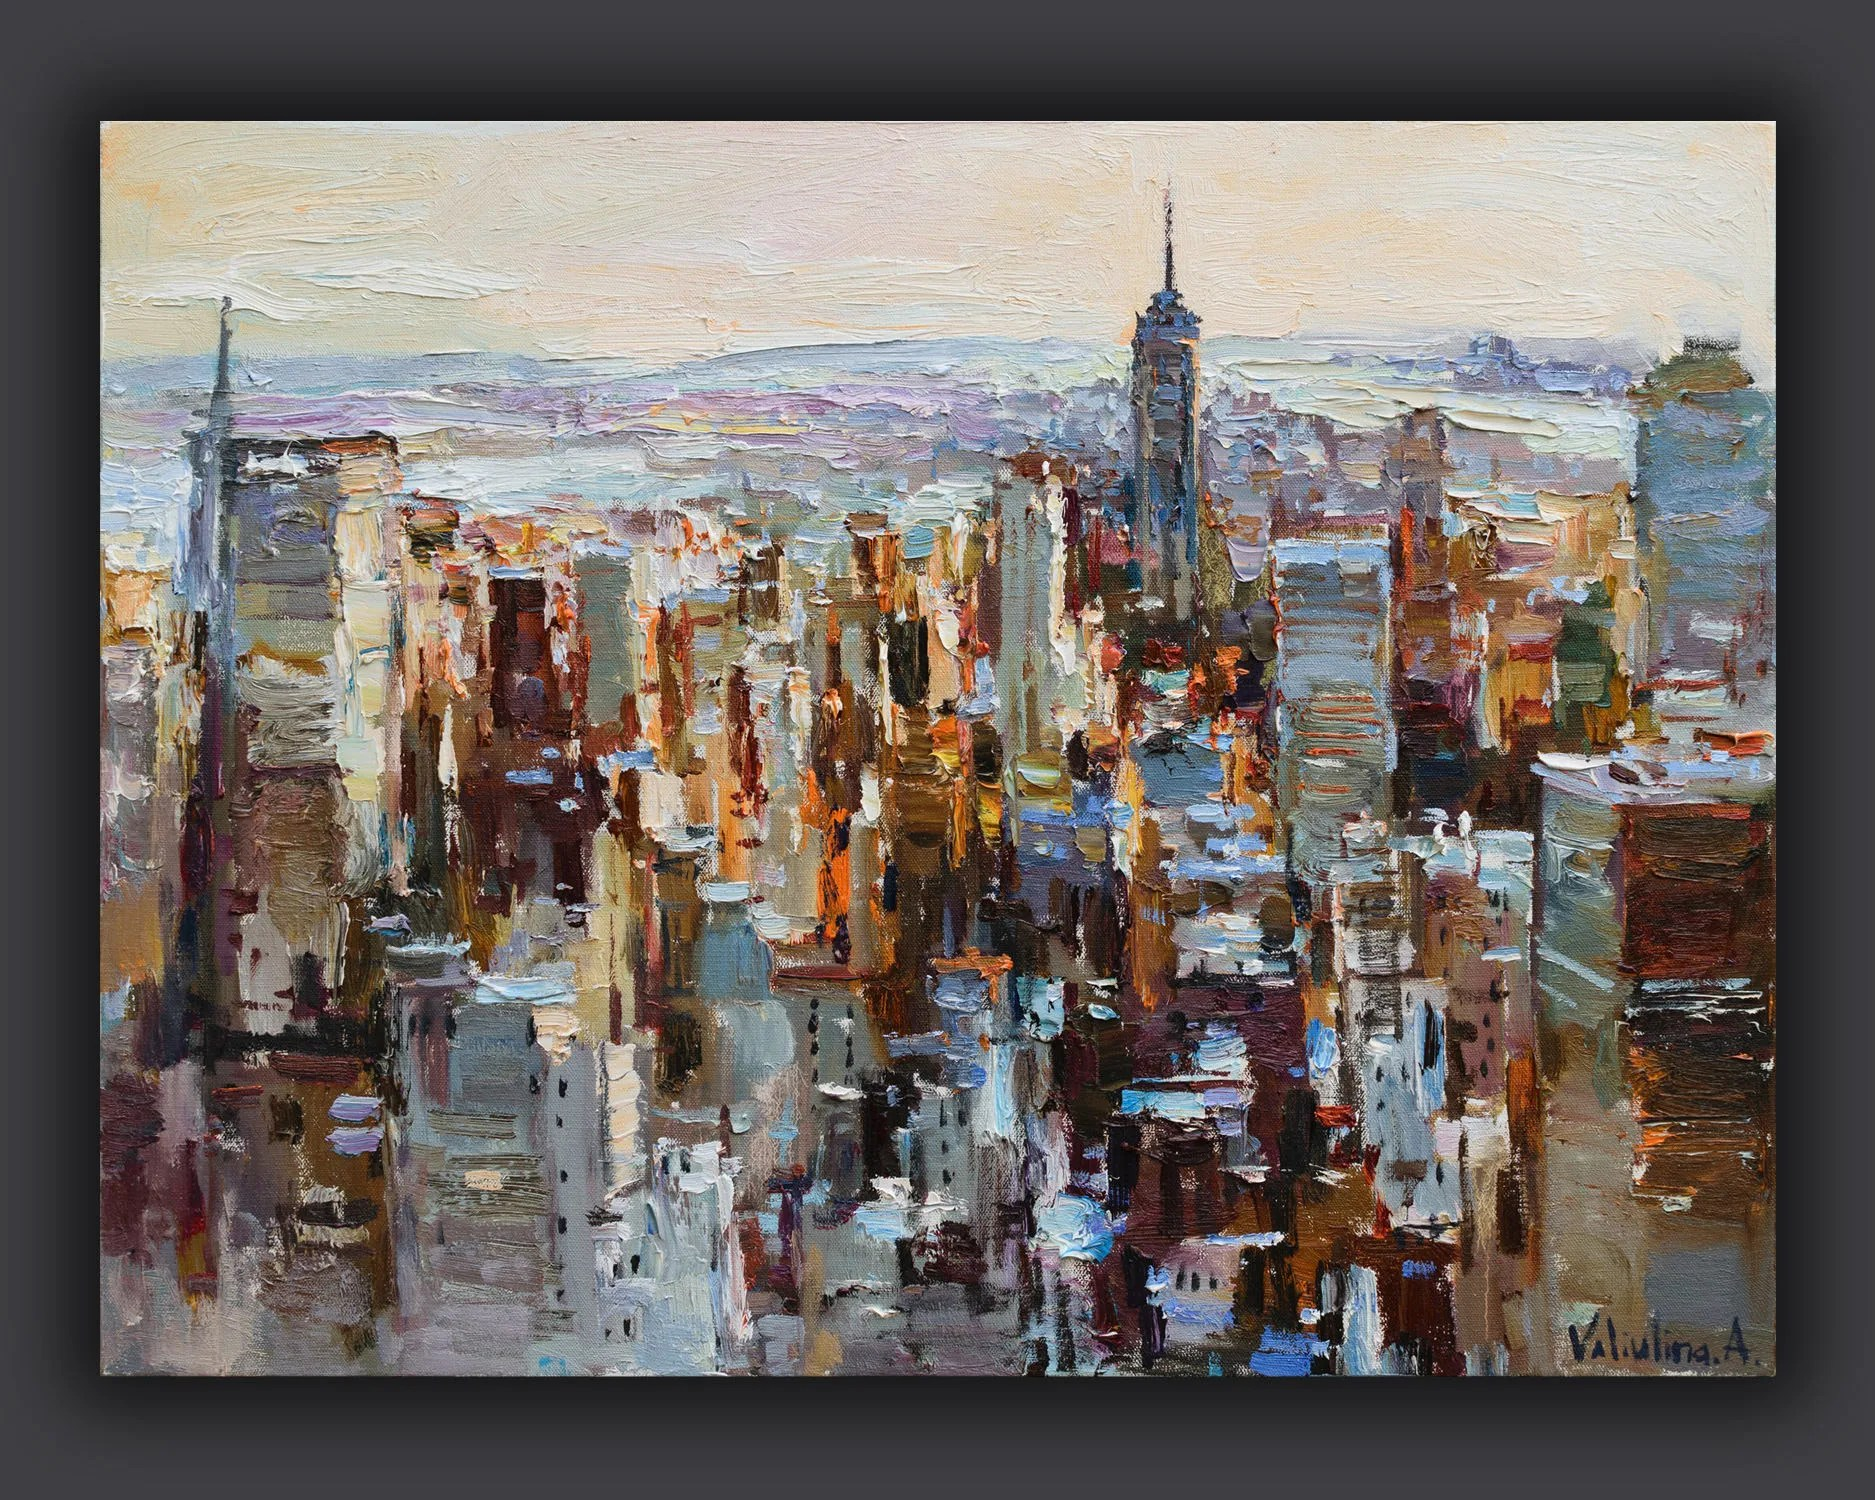 New york painting   Etsy New York City skyline Cityscape painting Sunrise oil painting NYC Morning  landscape New York painting Urban canvas art